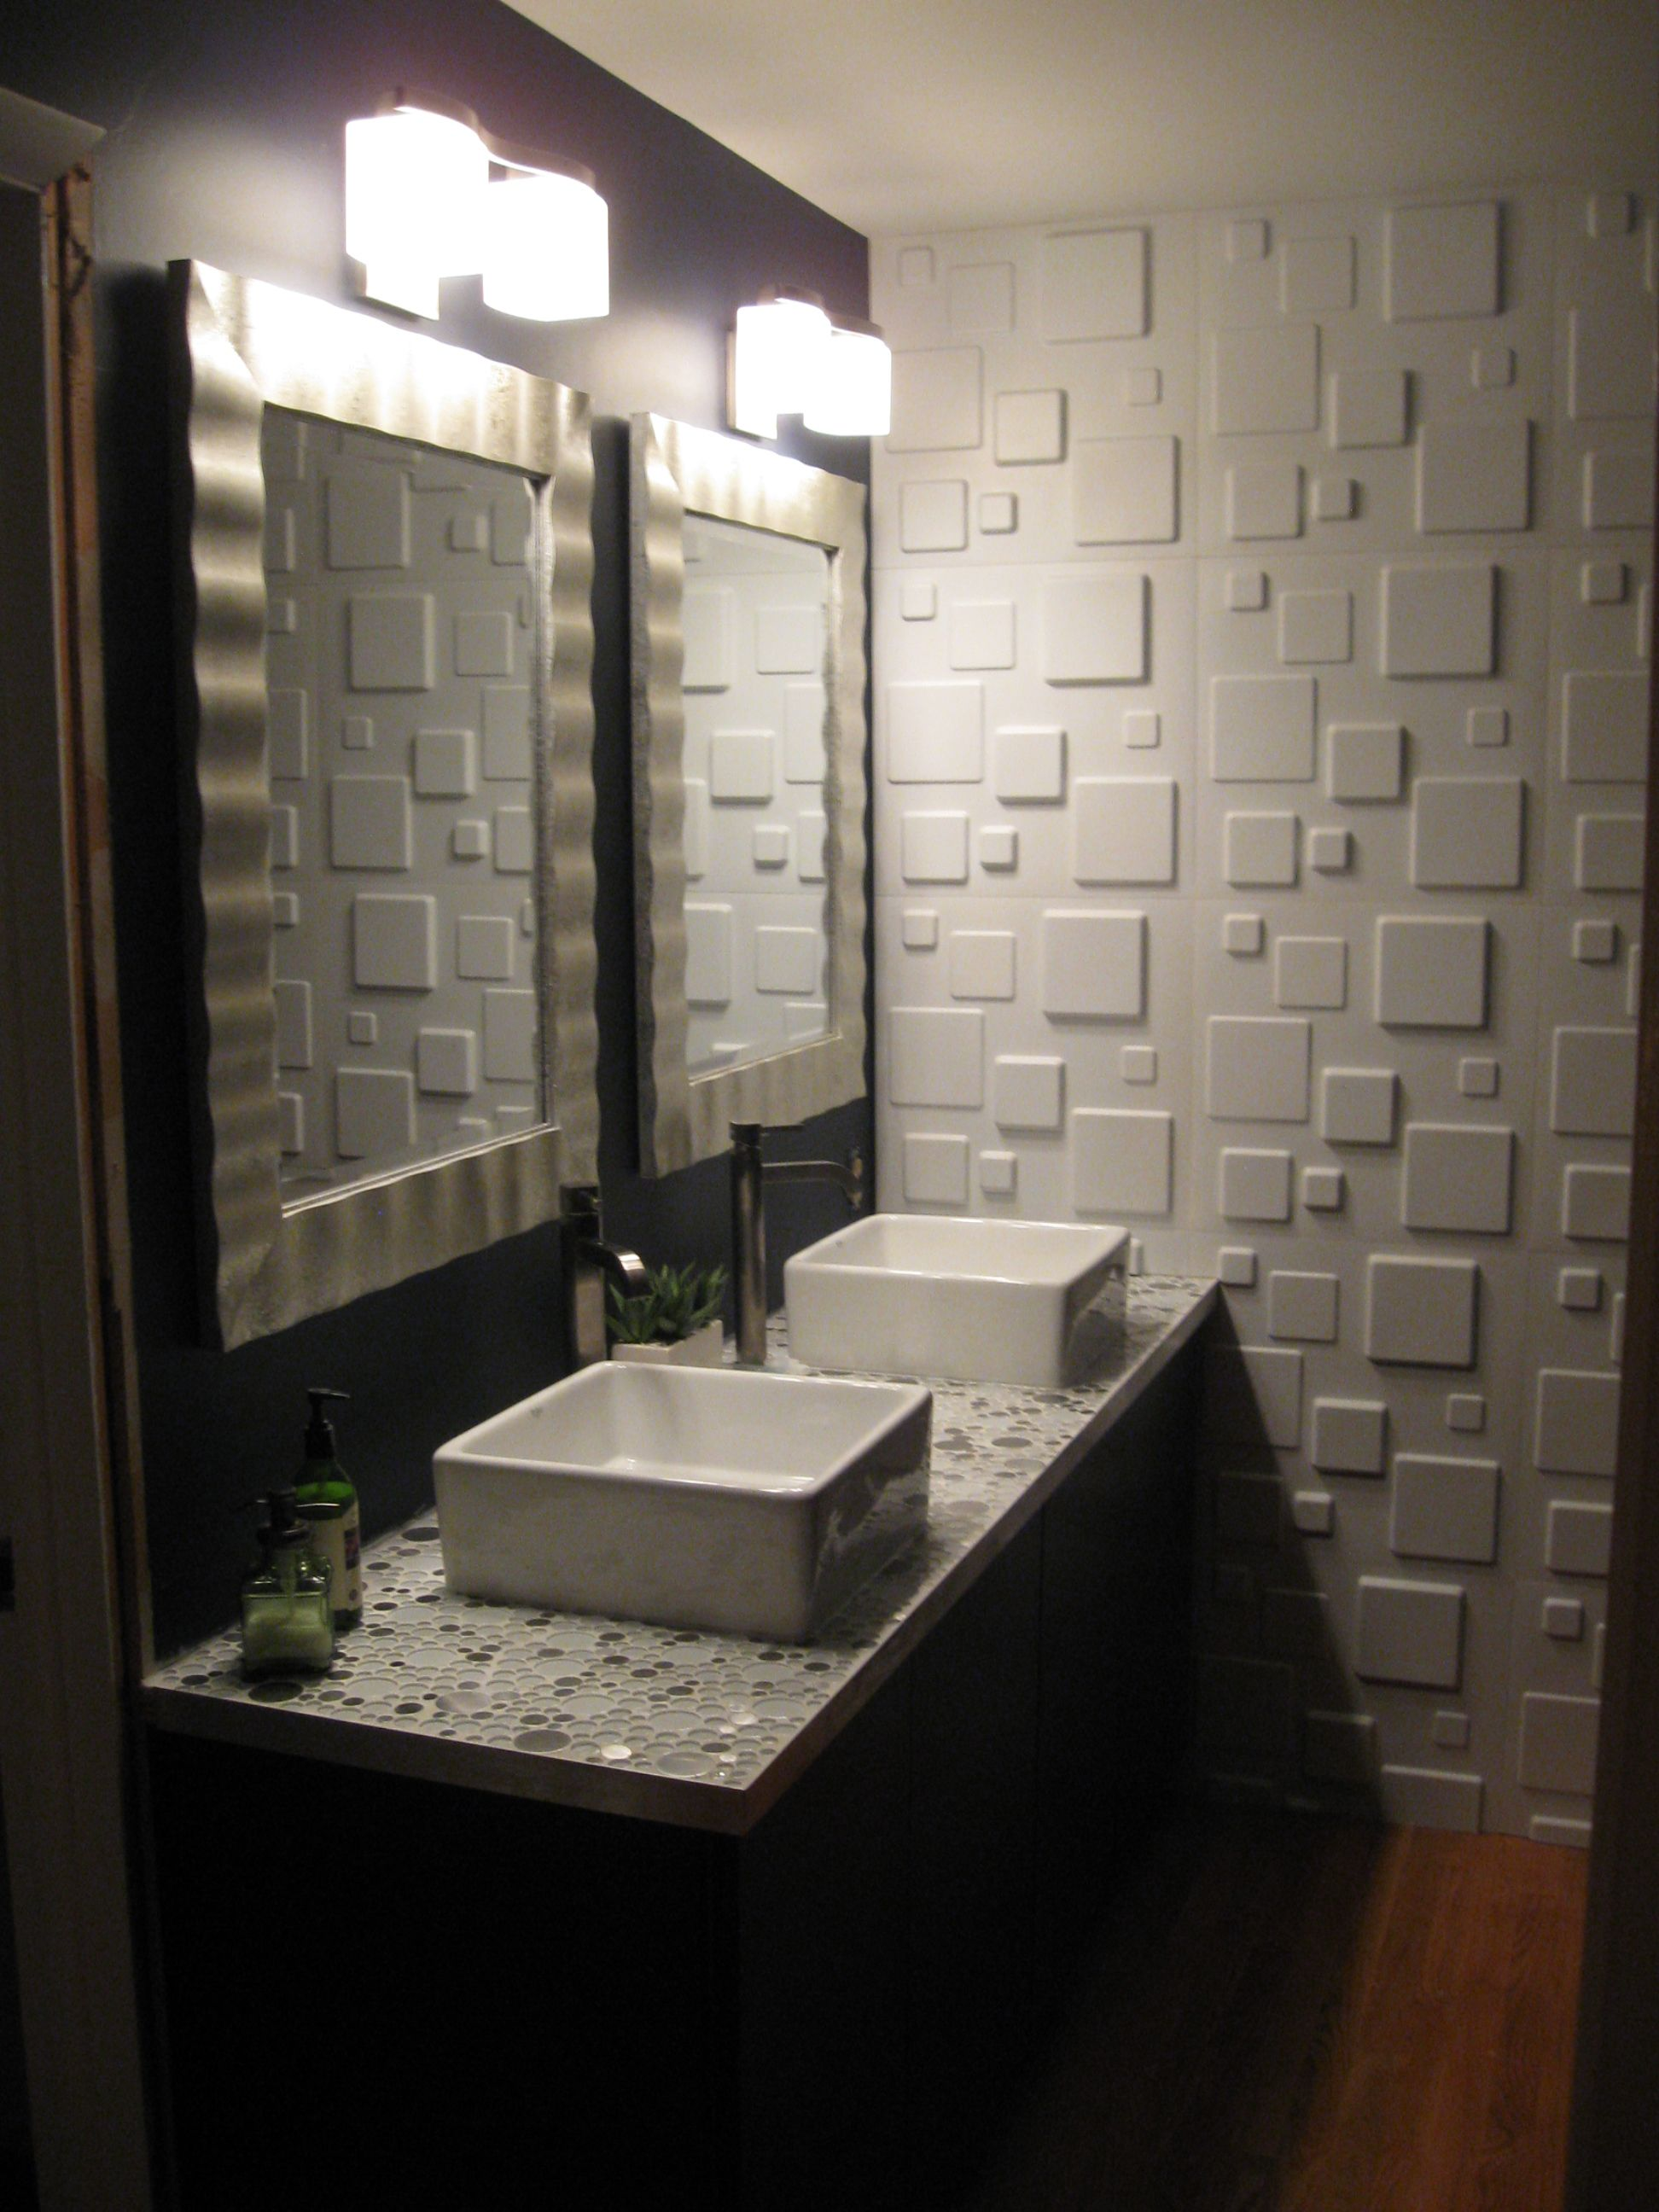 Decorative D Wall Panels Gallery D Wall Panels D Wall And - Wall paneling for bathroom for bathroom decor ideas